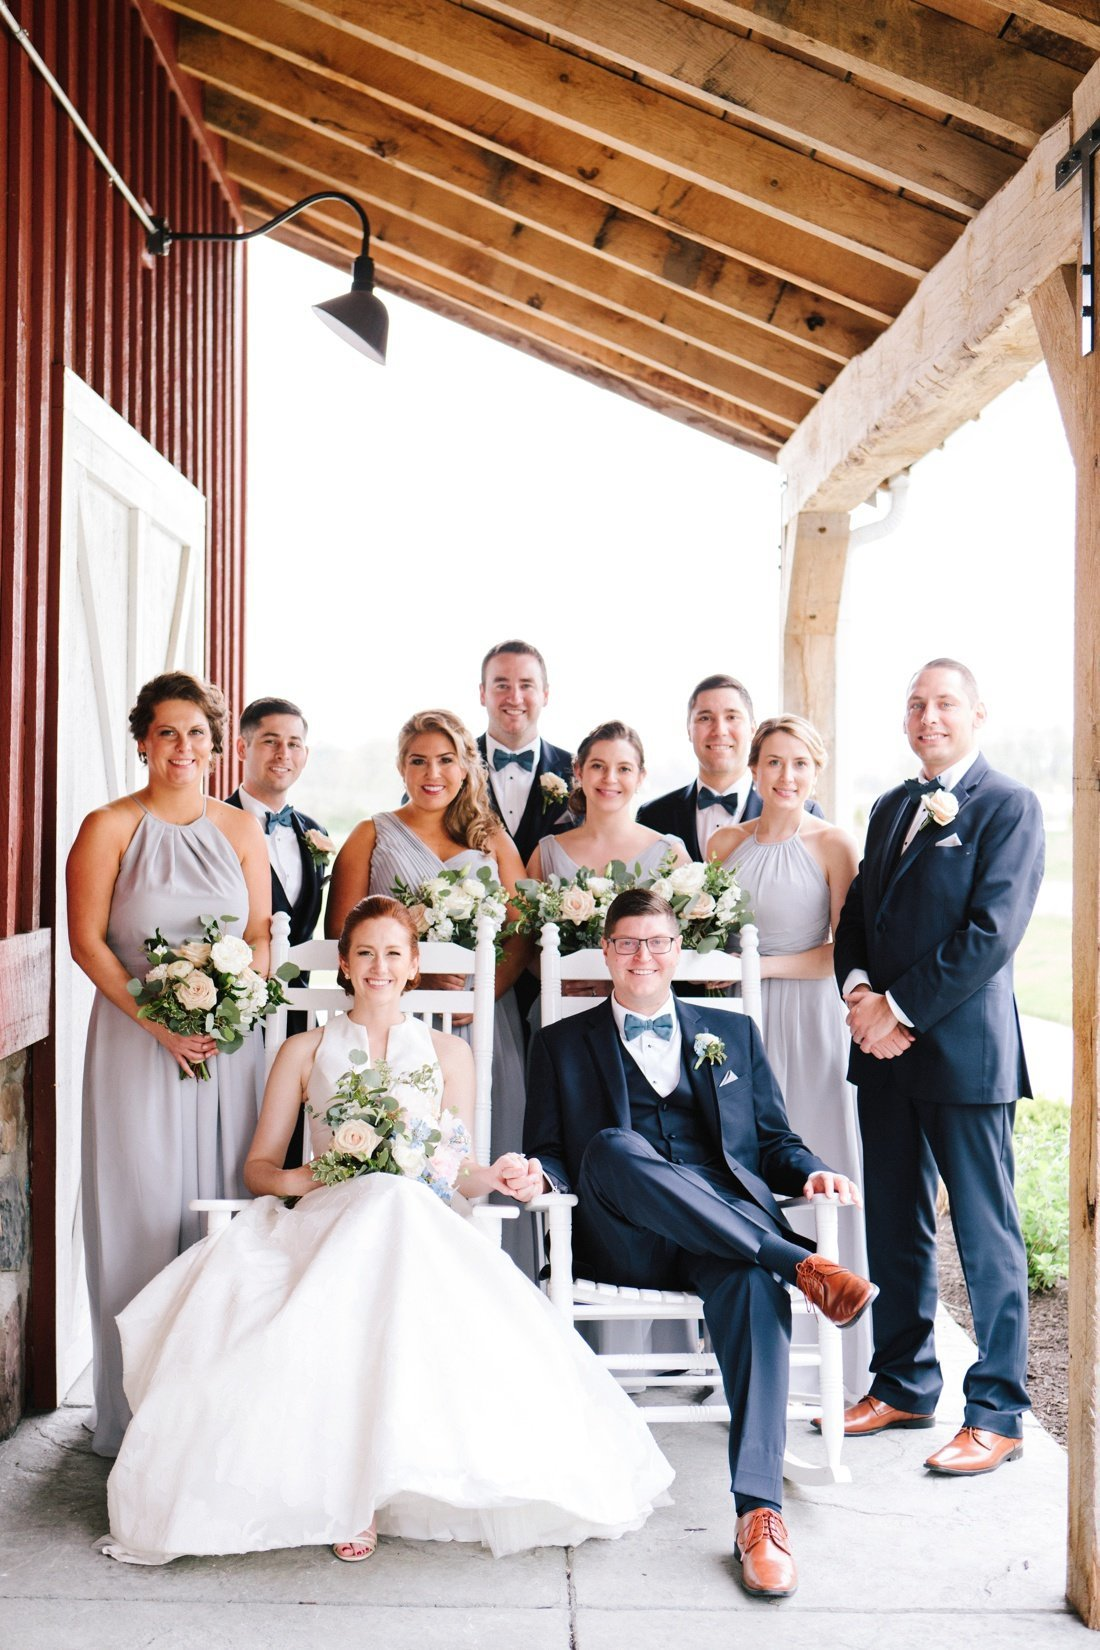 lindley farmstead at chatham hills wedding